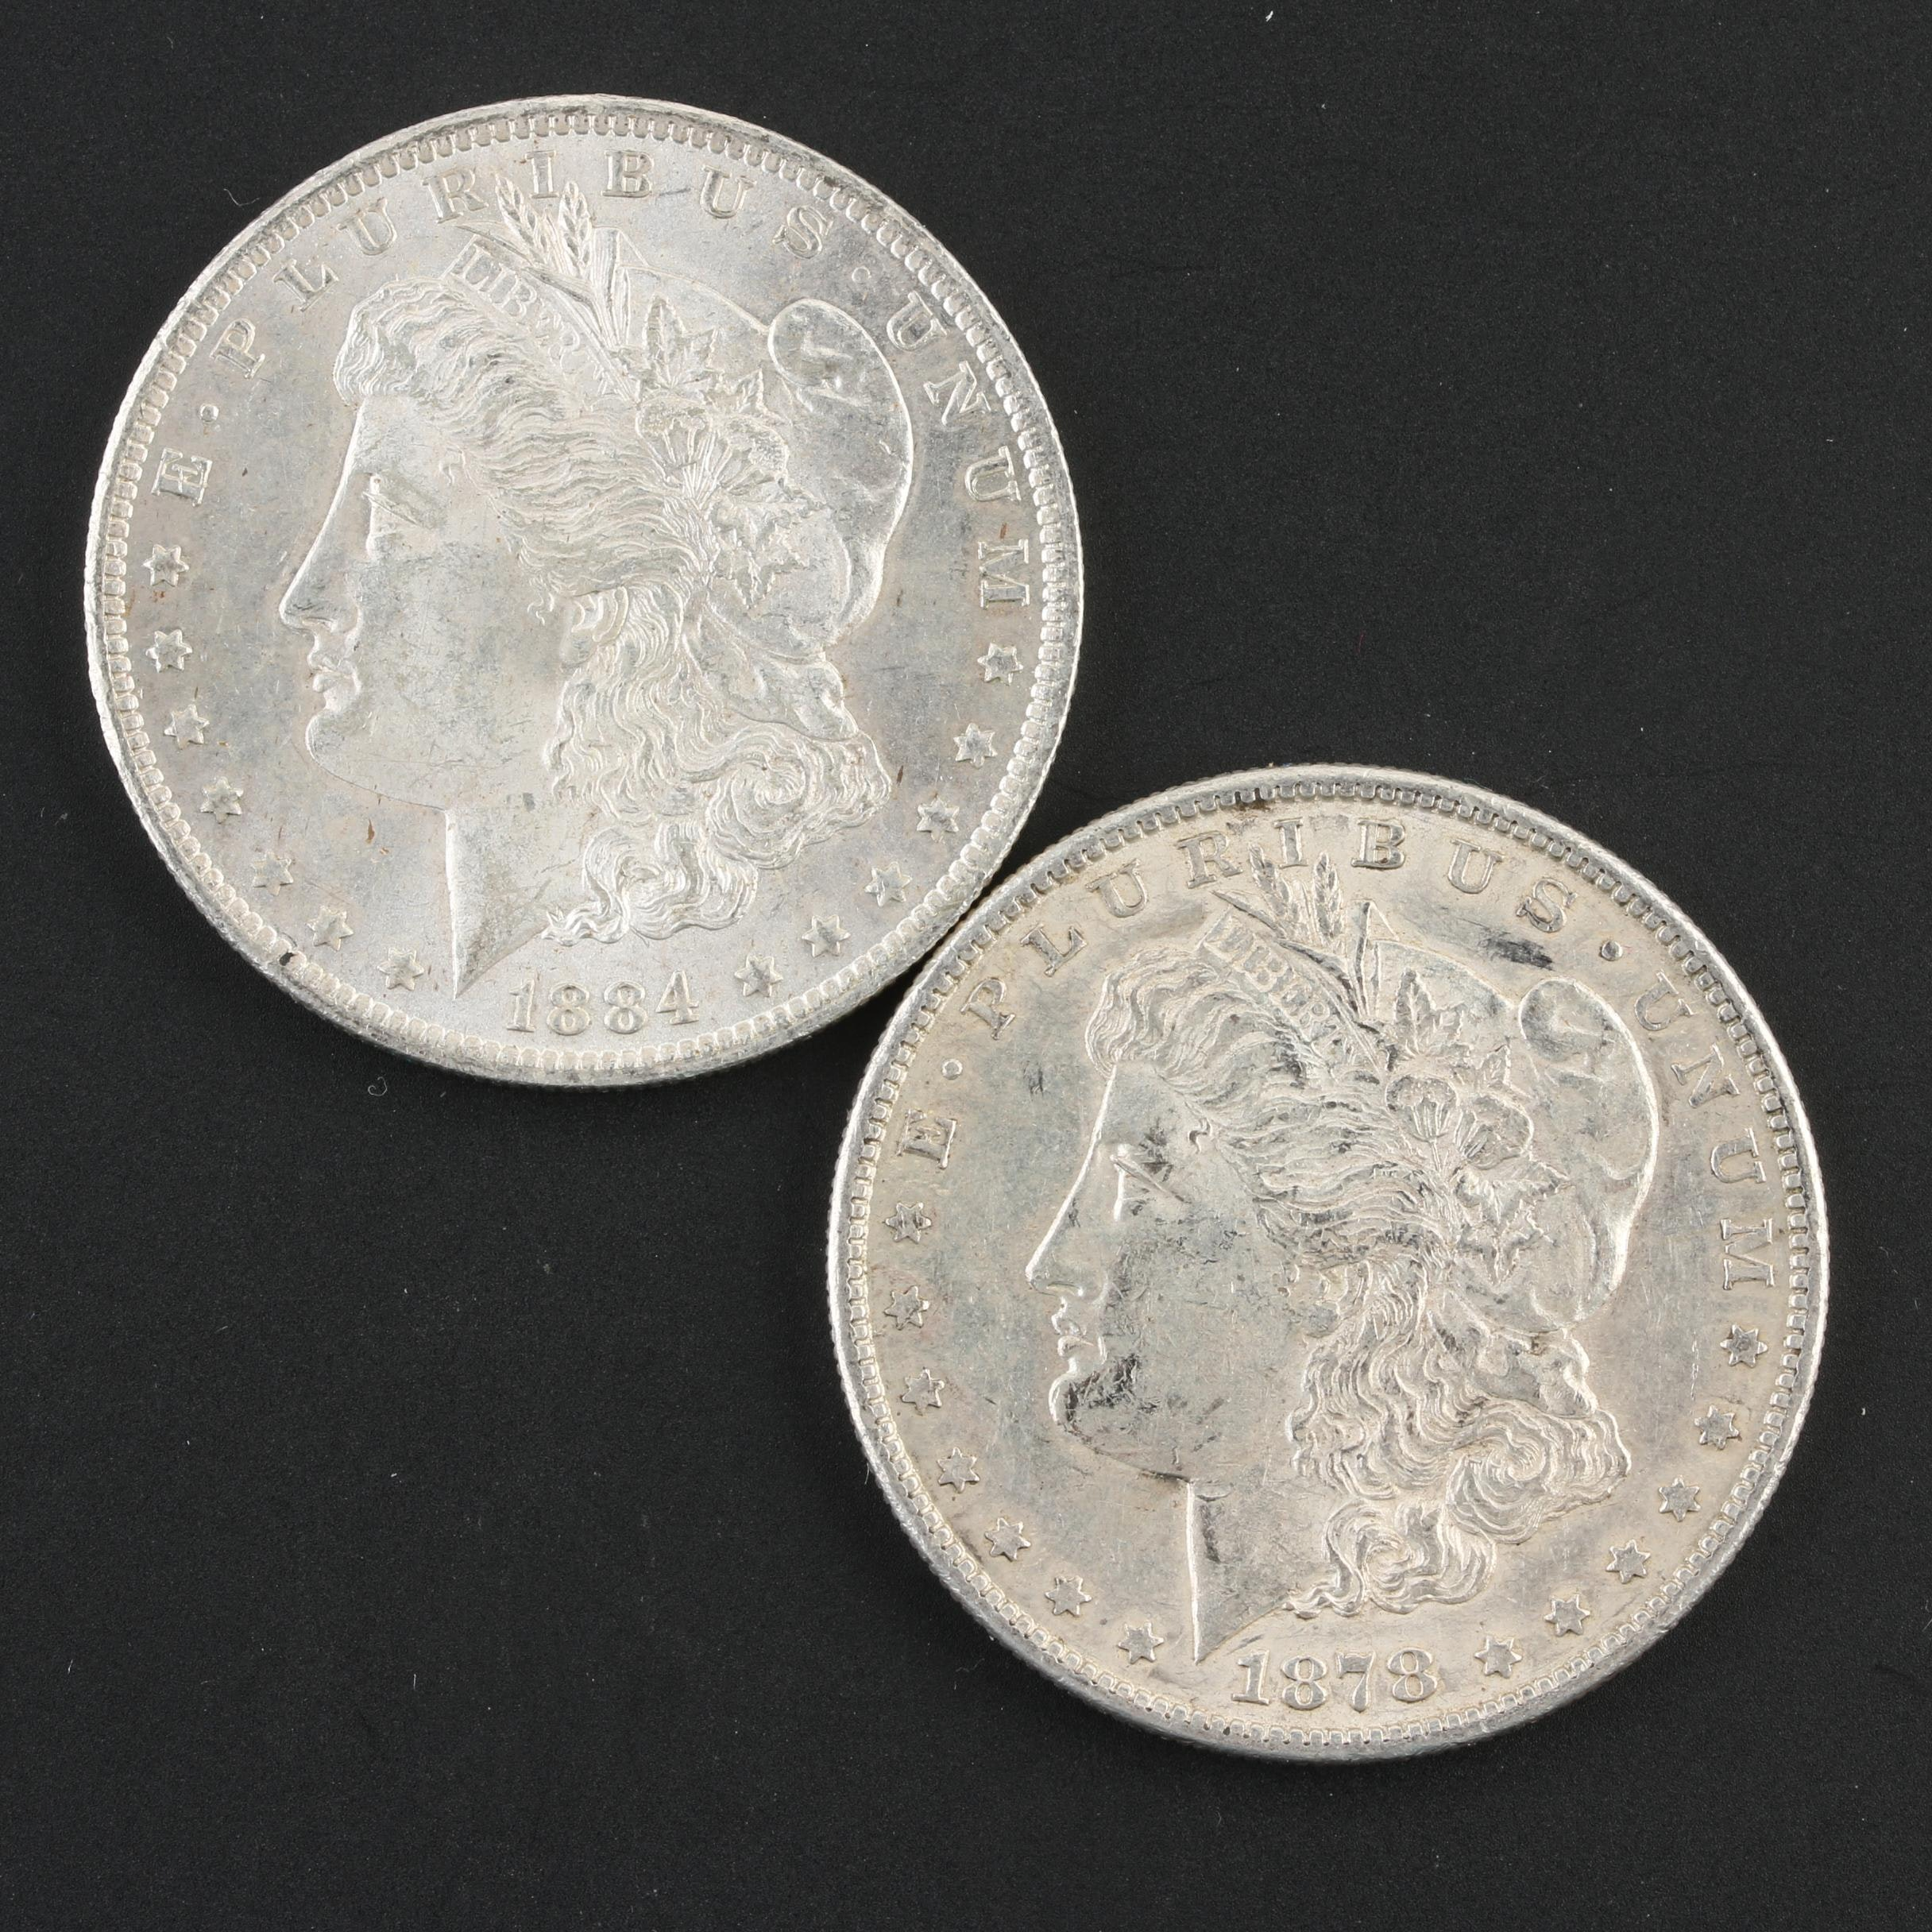 1878-S and 1884-O Morgan Silver Dollars